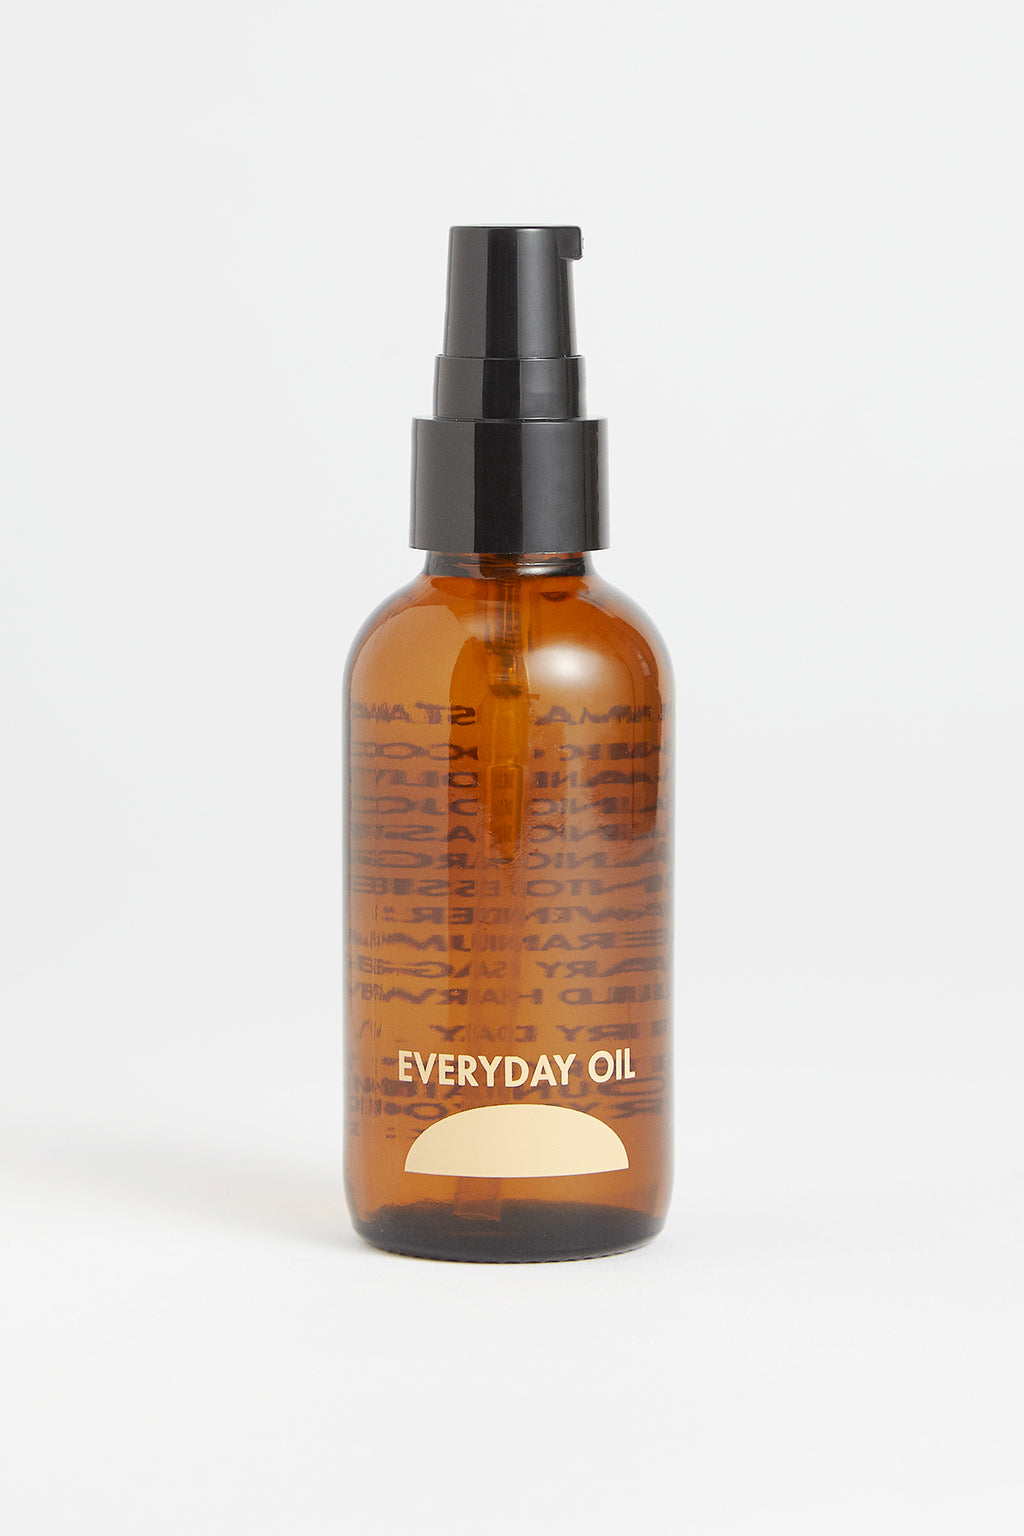 EVERYDAY OIL